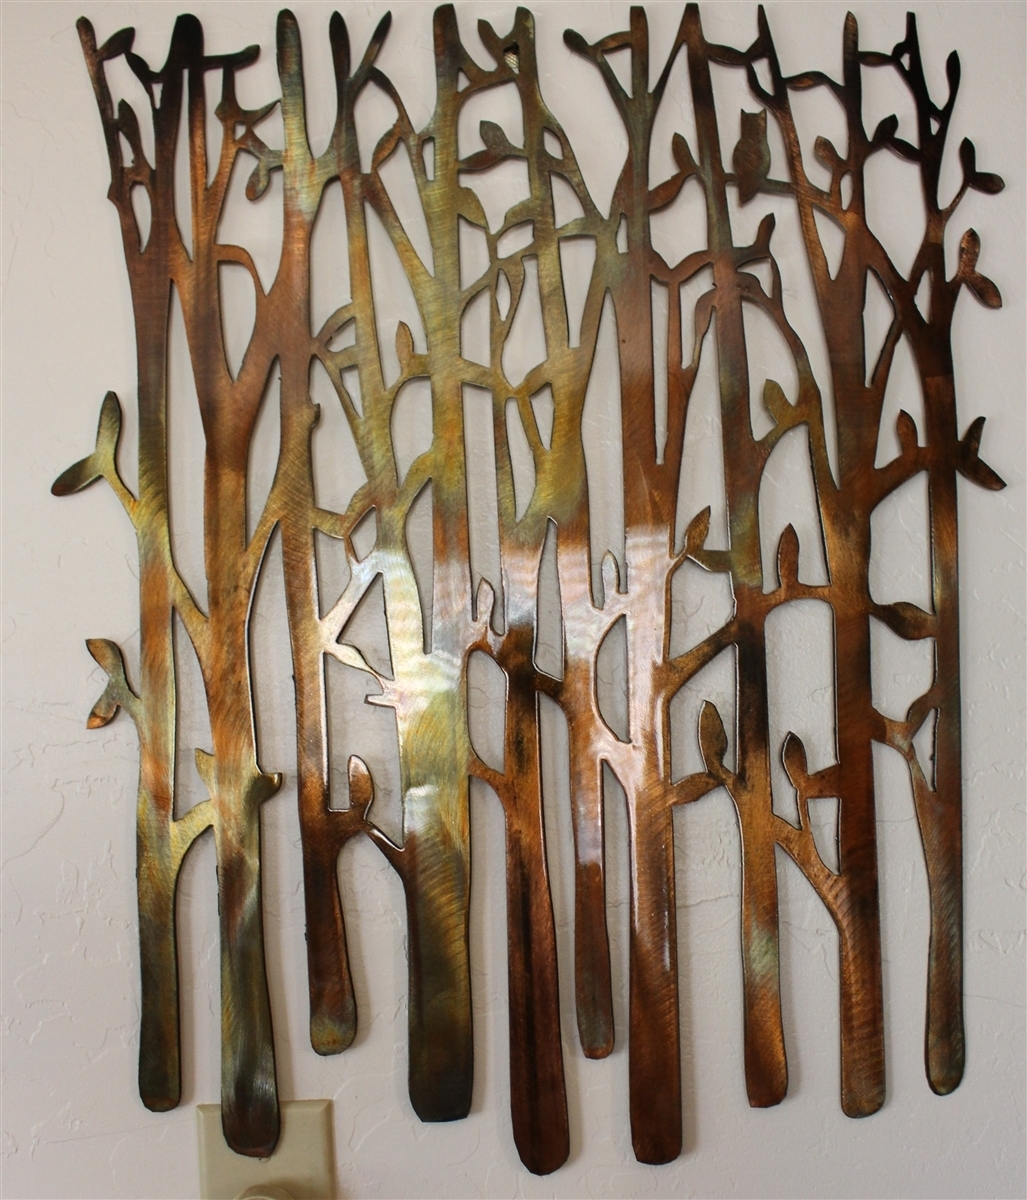 Birch Tree, Birch Tree Metal Art, Bamboo, Bird In The Trees, Bird Throughout Most Popular Metal Wall Accents (View 8 of 15)